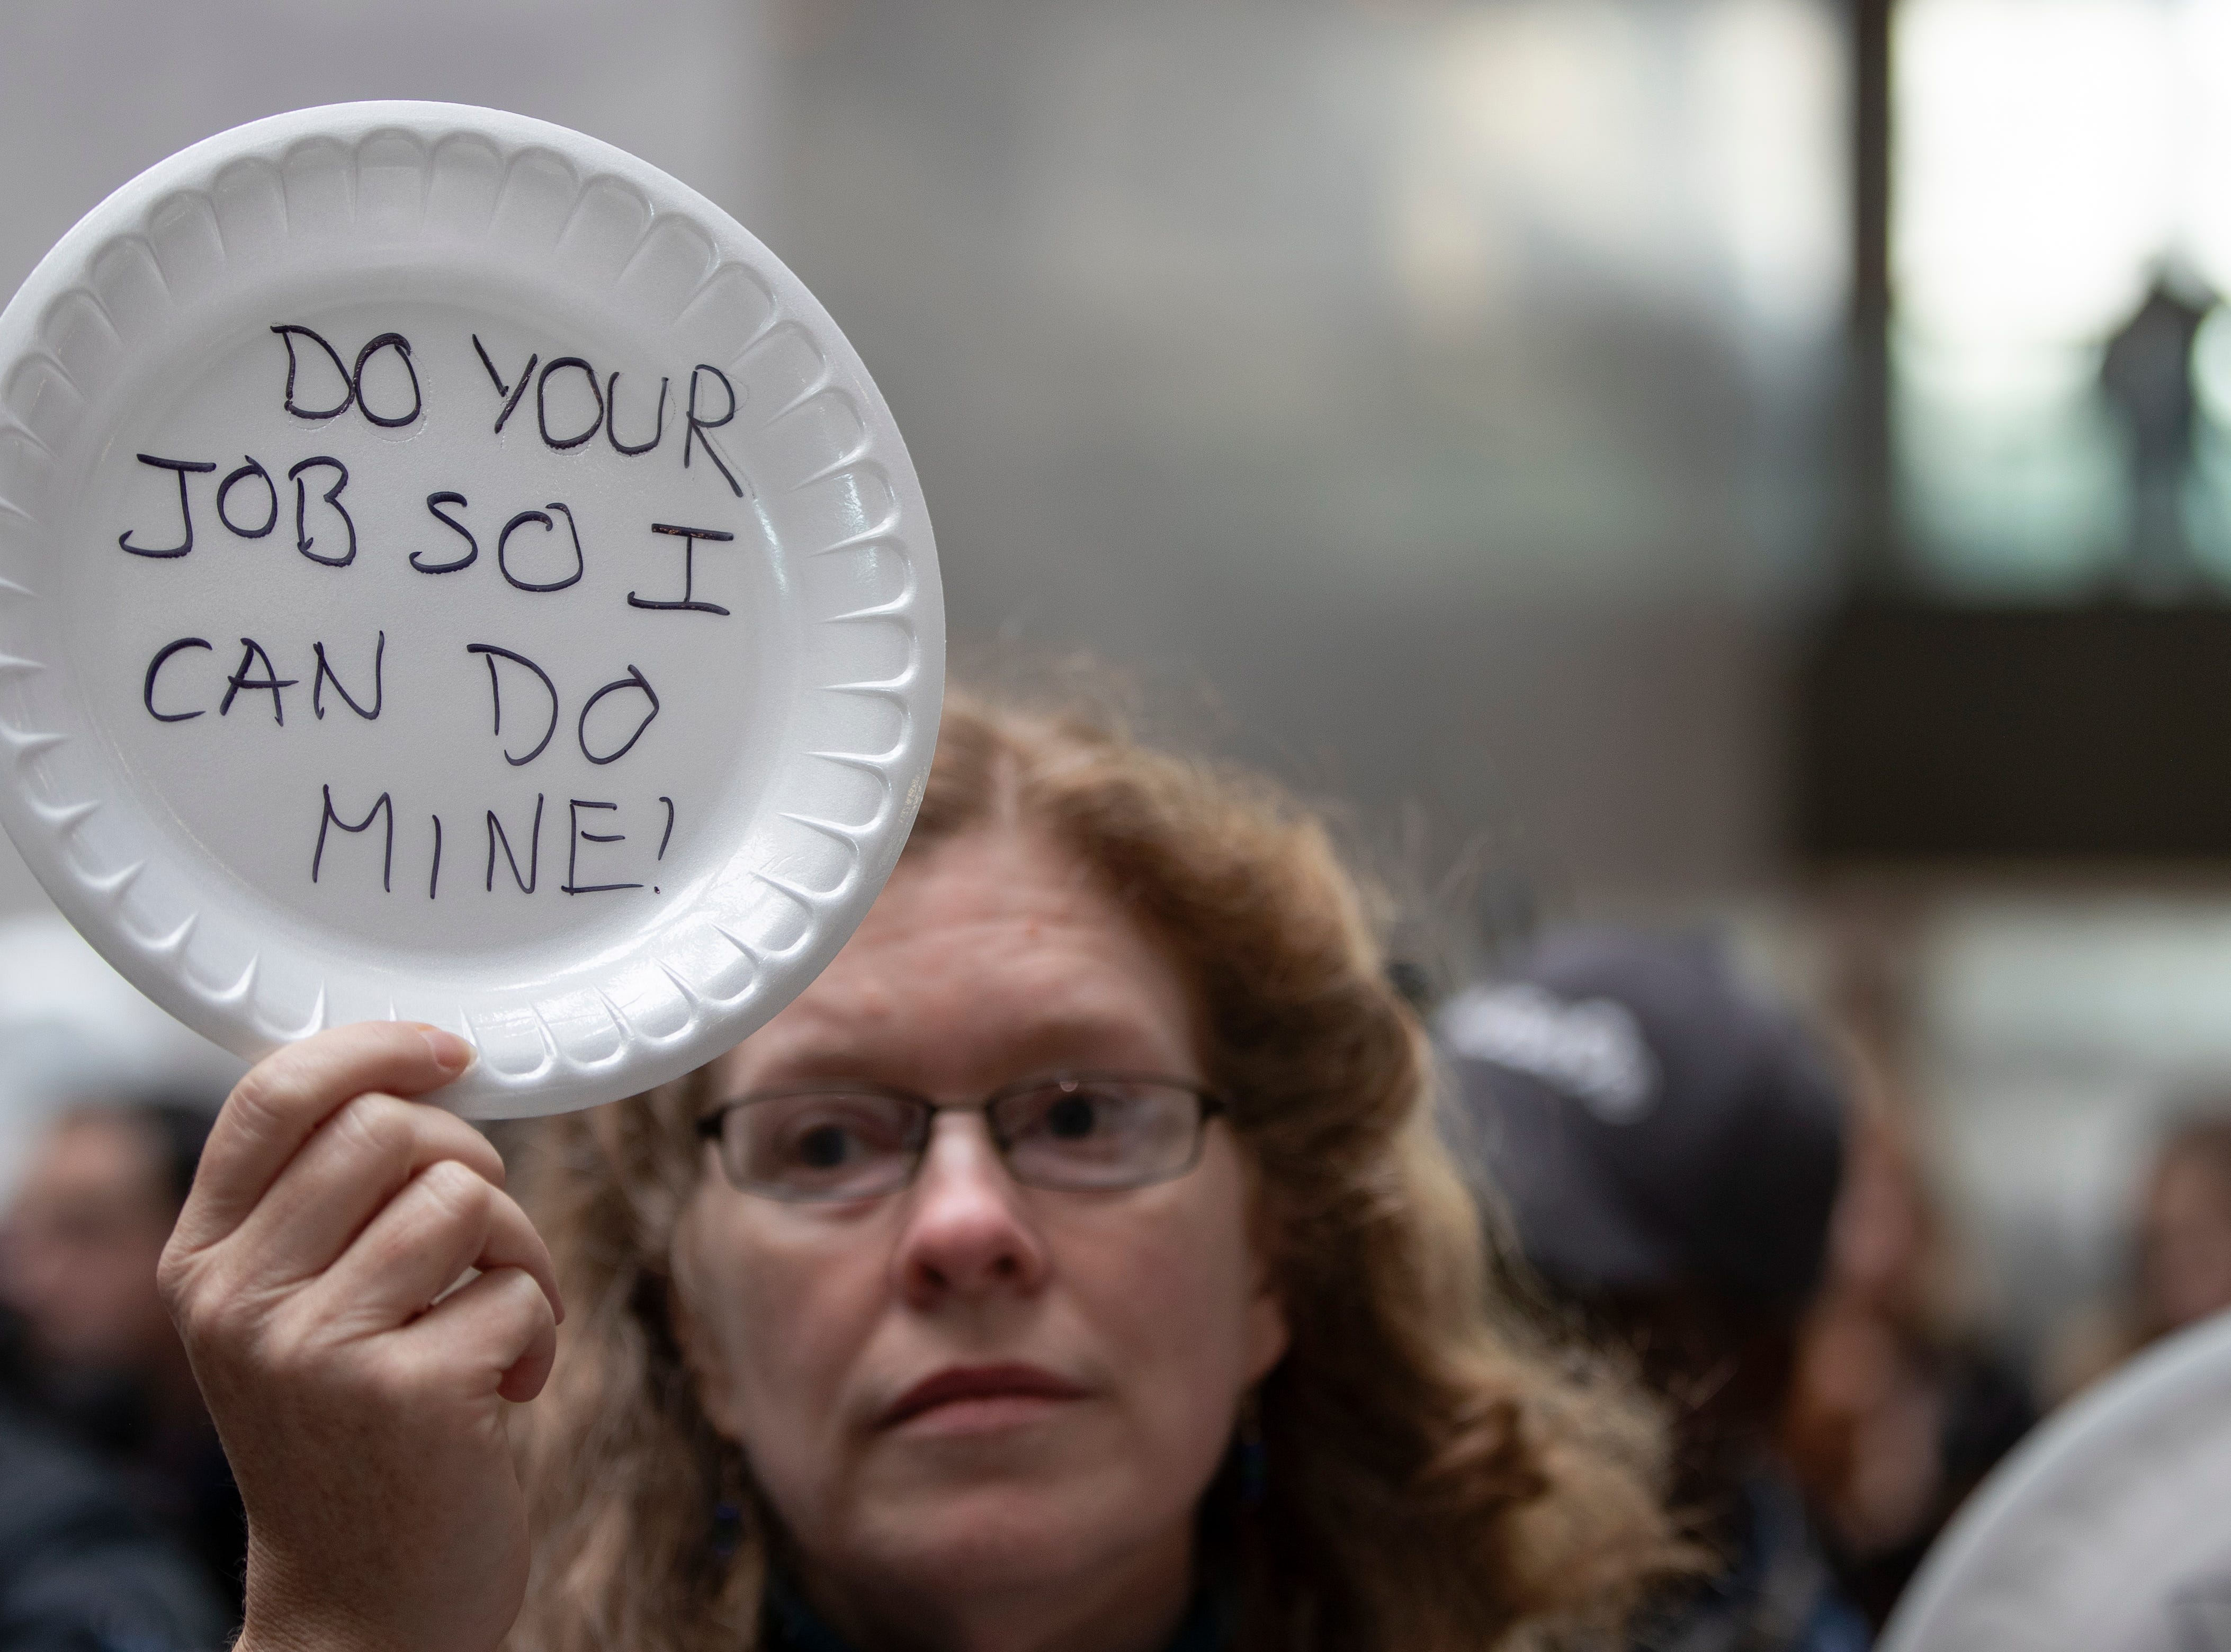 A woman displays her thoughts, written out on a disposable plate, during the 'Occupy Hart' protest against the partial government shutdown sponsored by American Federation of Government Employees at the Hart Senate Office Building at the US Capitol in Washington, DC on 23 Jan. 23, 2019. Federal workers and their supporters stood silently for 33 minutes for the 33 days of the shutdown.